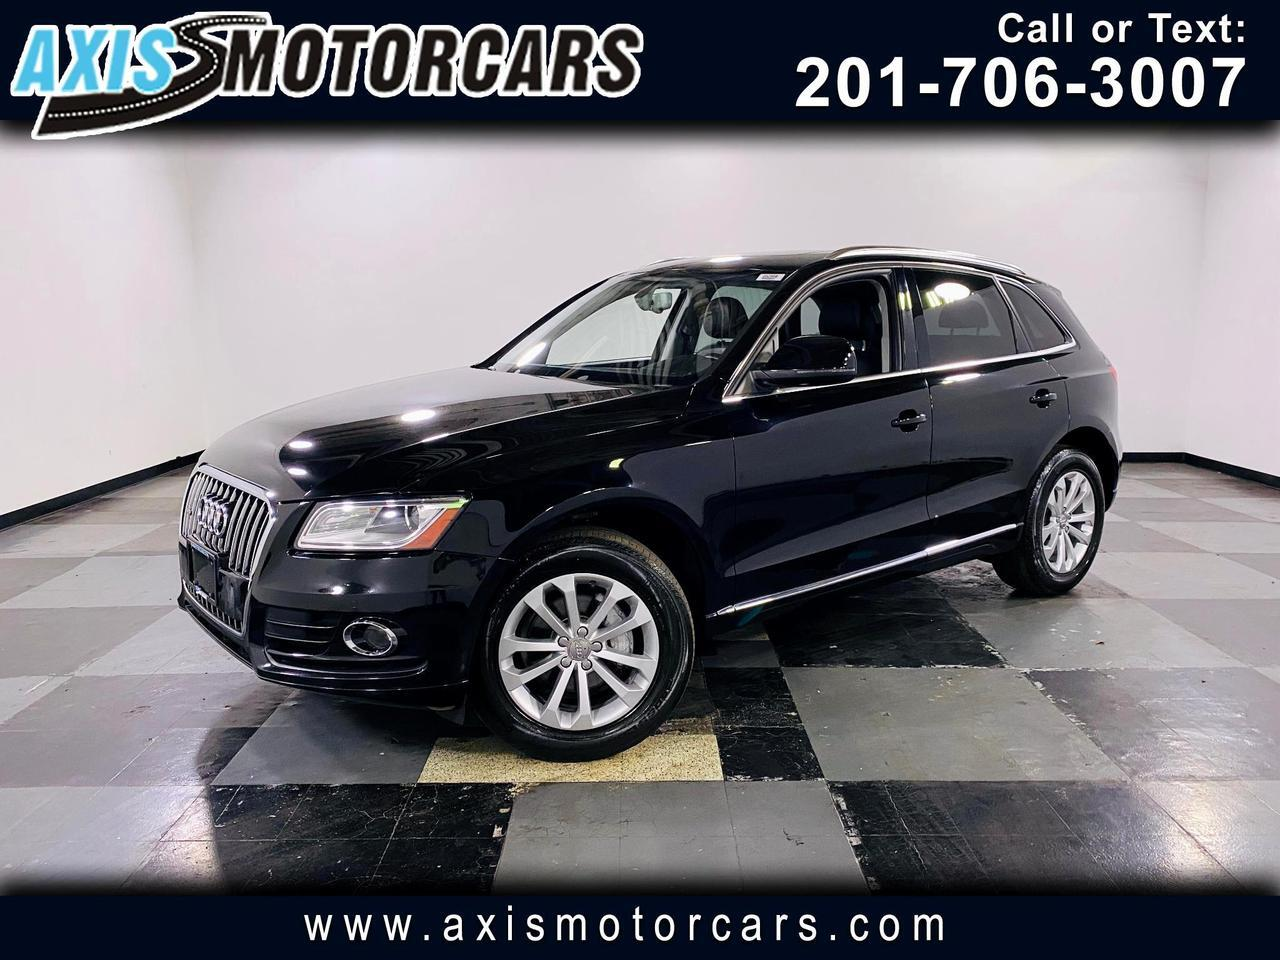 2014 Audi Q5 4dr quattro 2.0T w/Backup Camera Navigation Panora Jersey City NJ